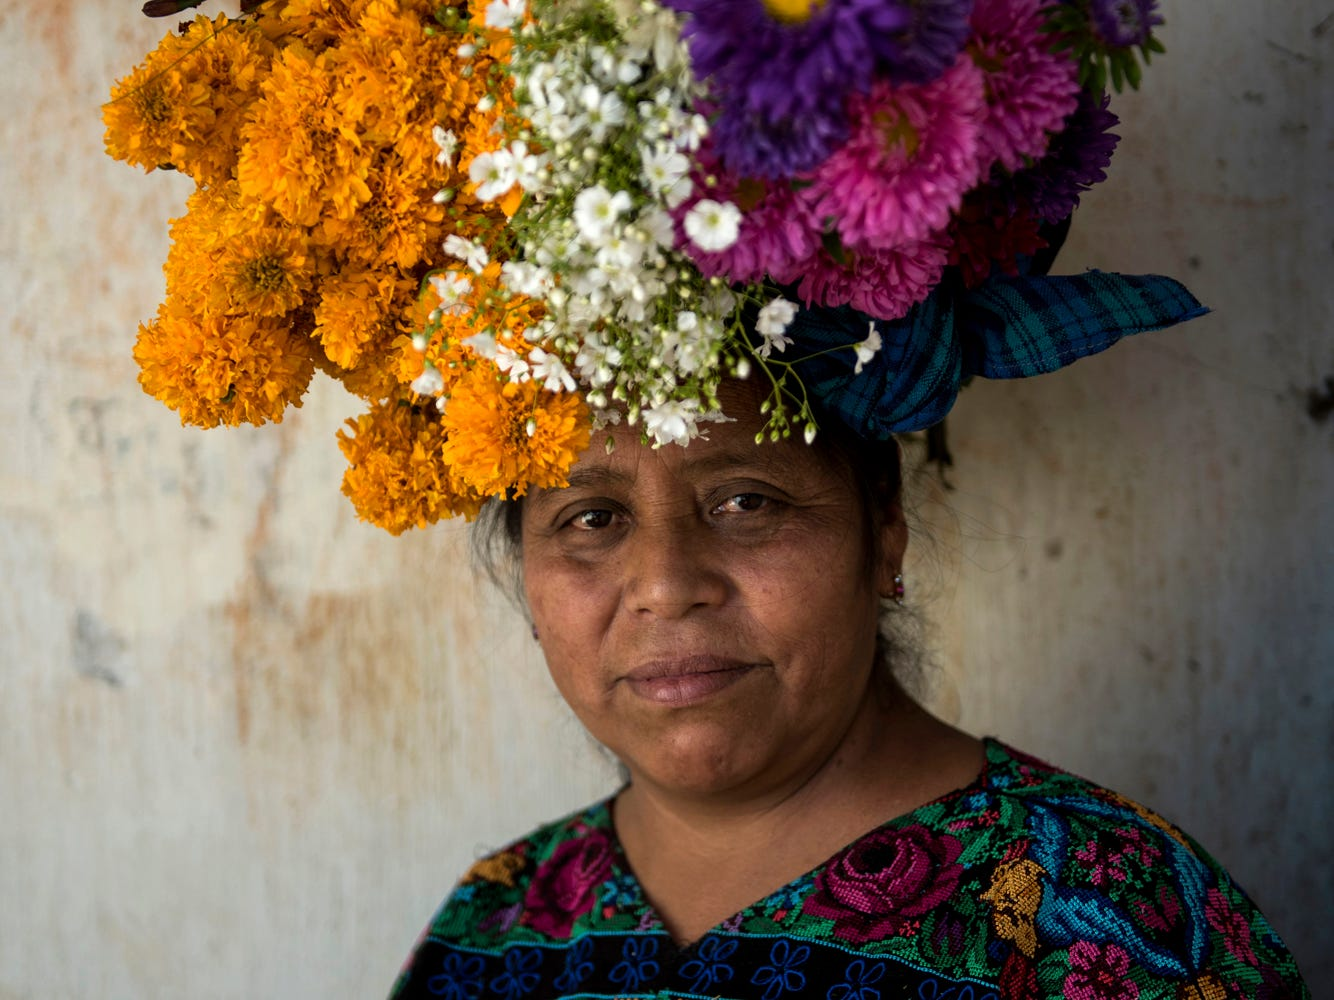 Olga Socorec, 54, balances flowers on her head as she pauses to pose for a portrait while decorating the tombs of family members, including her father's, during Day of the Dead celebrations at the cemetery in Santiago Sacatepequez, Guatemala, Thursday, Nov. 1, 2018. (AP Photo/Oliver de Ros)